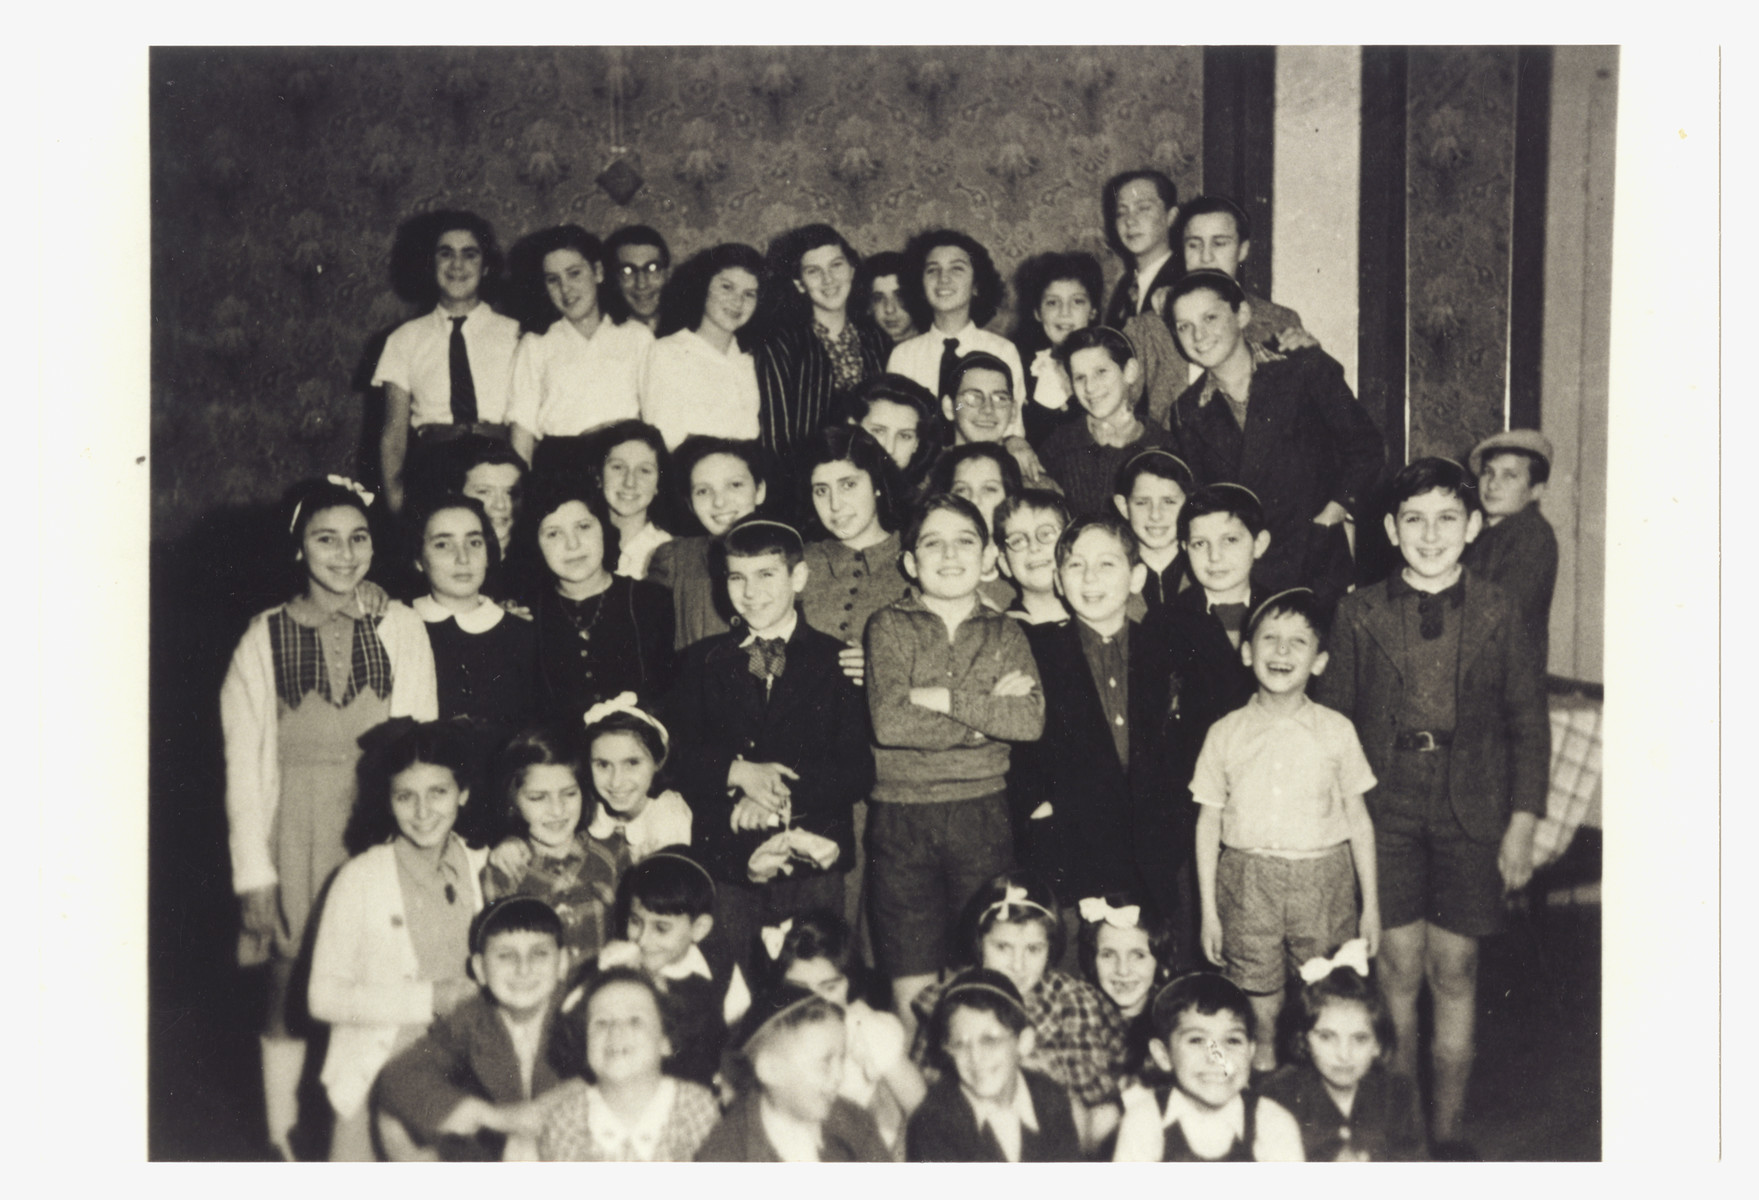 Group portrait of children in the Institut Ascher, a religious children's home in Switzerland.  Among those pictured is Joseph or Frederick Korpiel (second row, second from left).